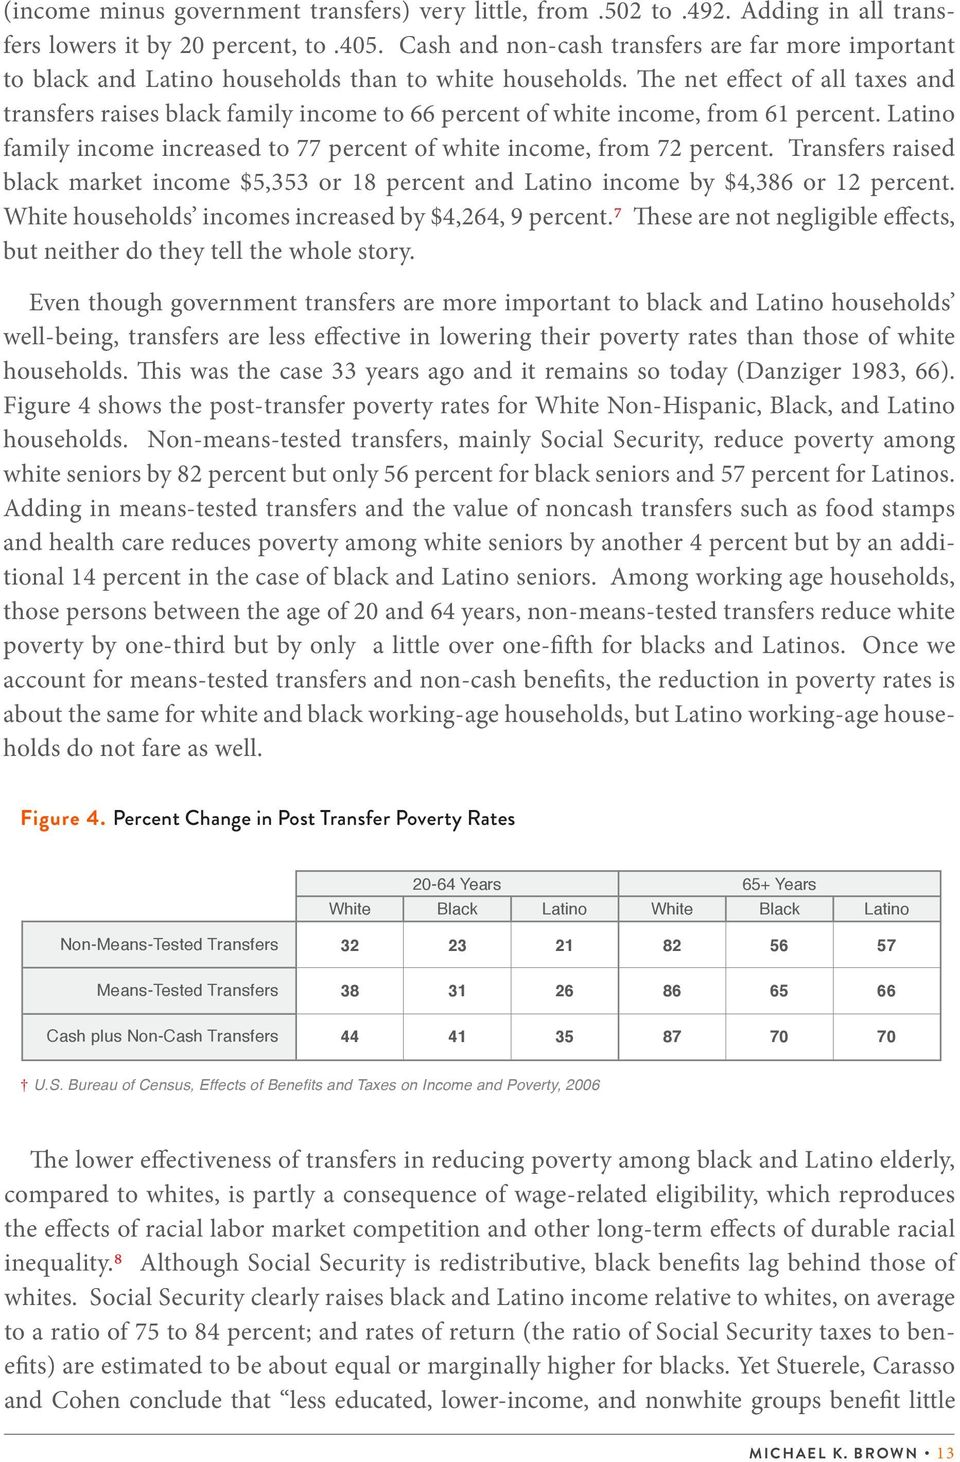 The net effect of all taxes and transfers raises black family income to 66 percent of white income, from 61 percent. Latino family income increased to 77 percent of white income, from 72 percent.